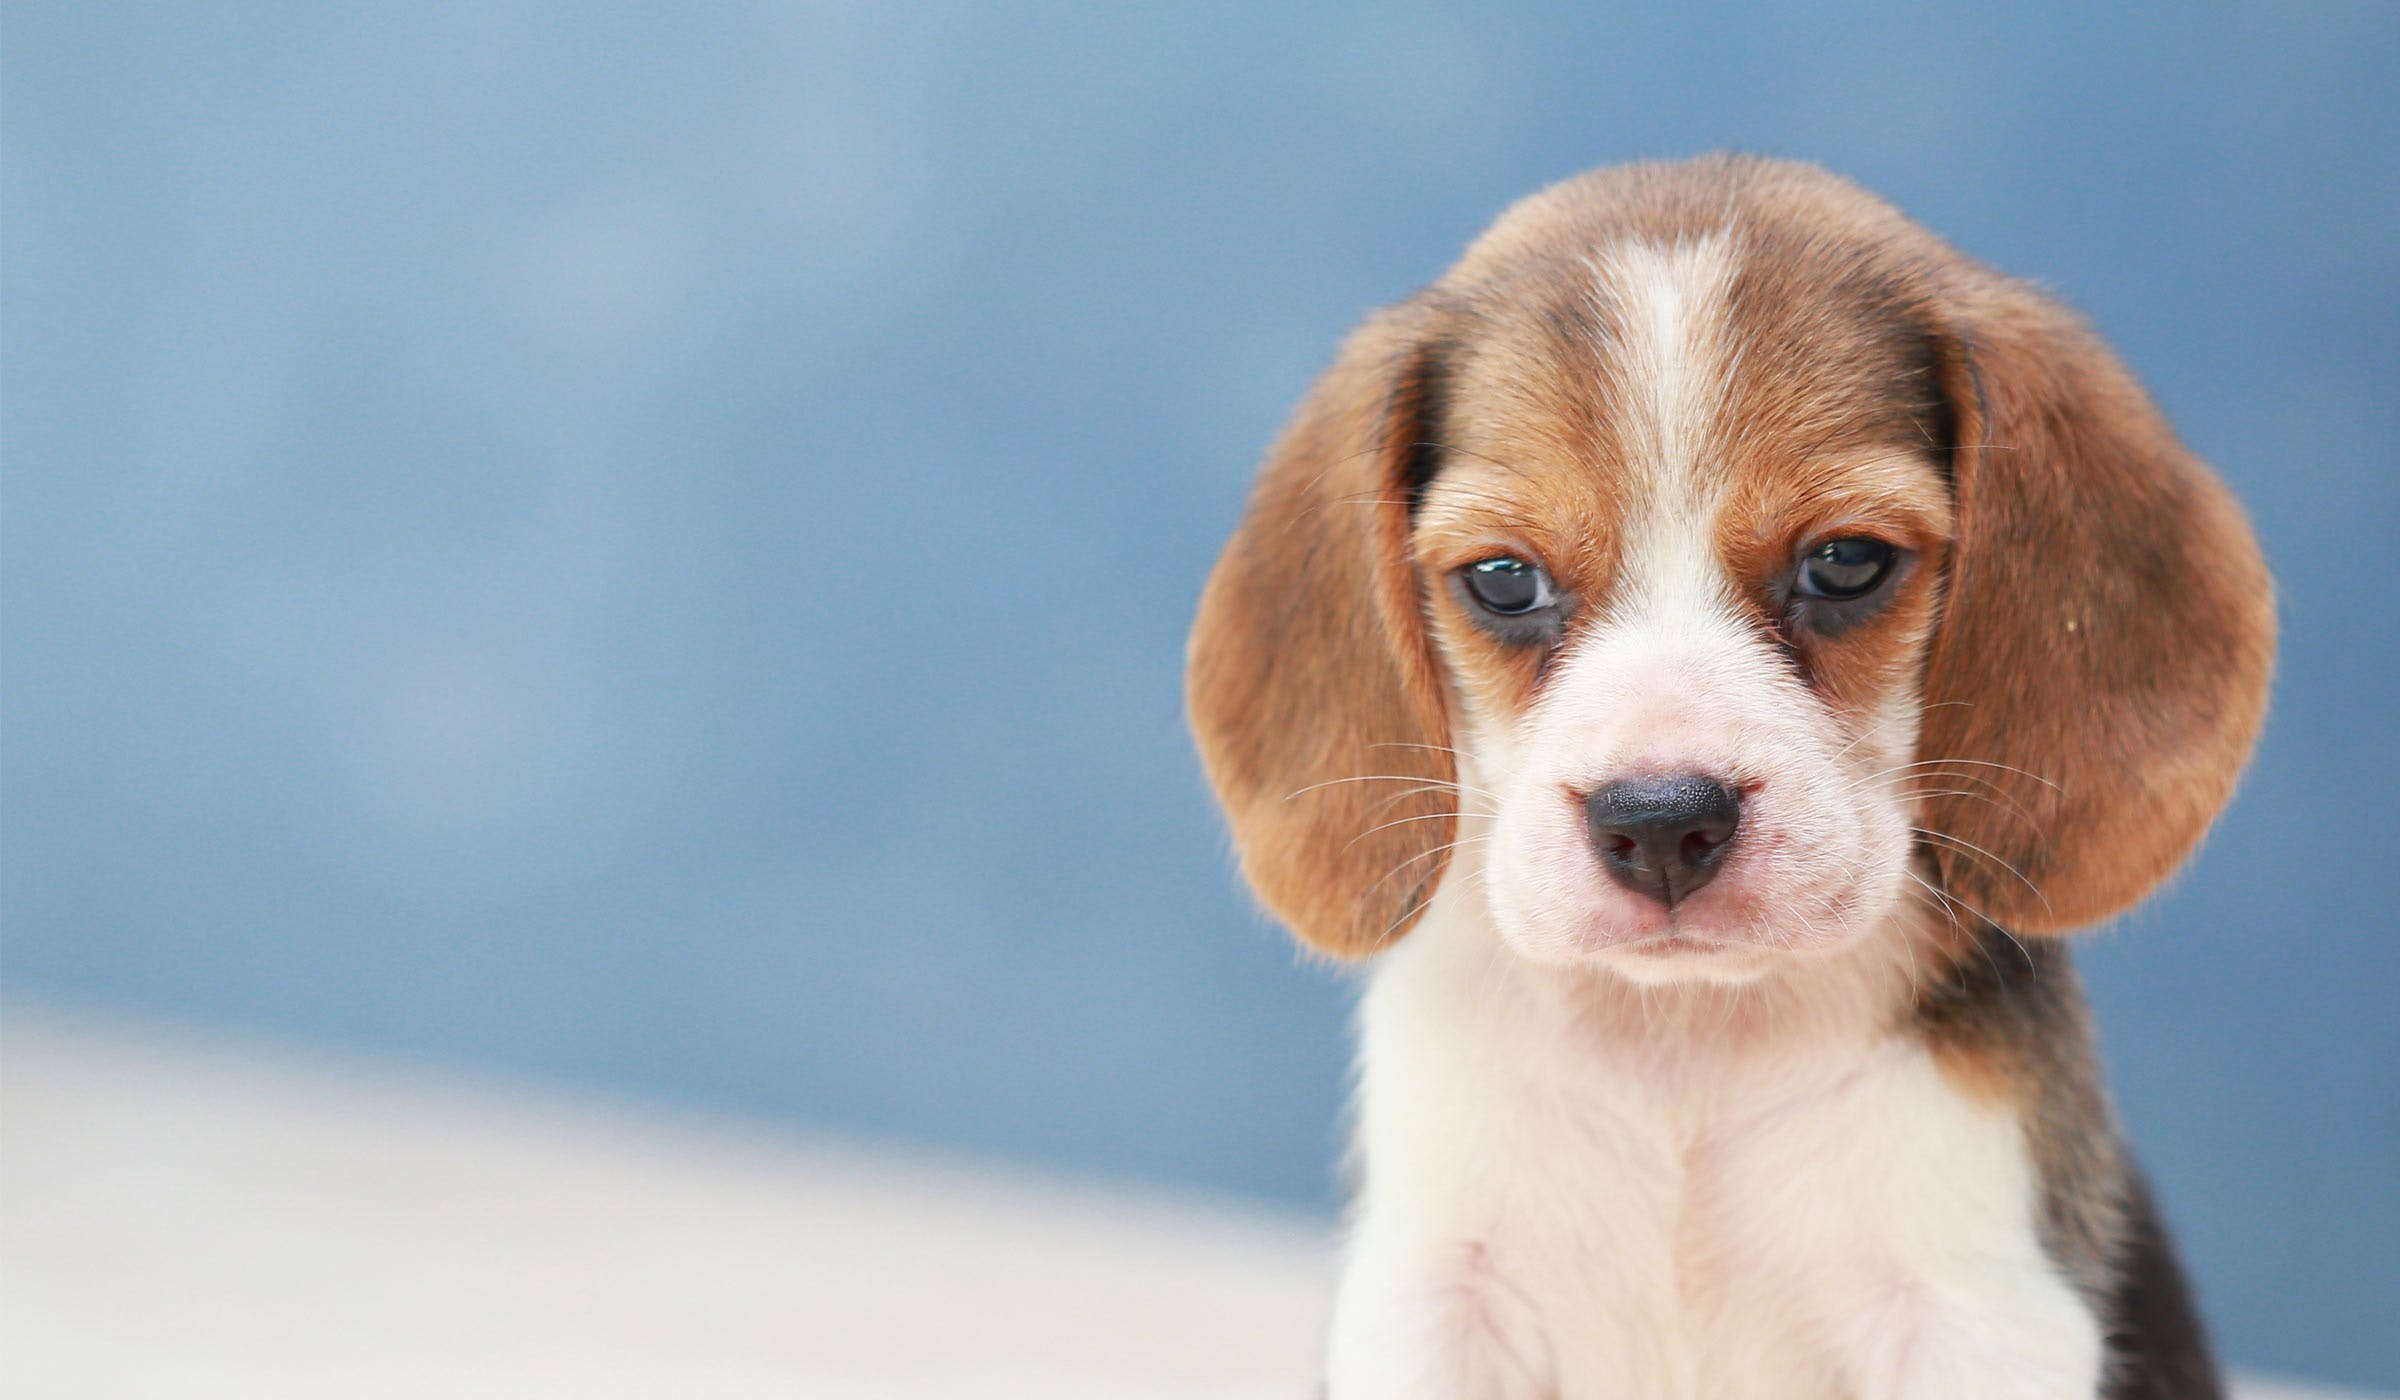 How to Crate Train a Beagle Puppy